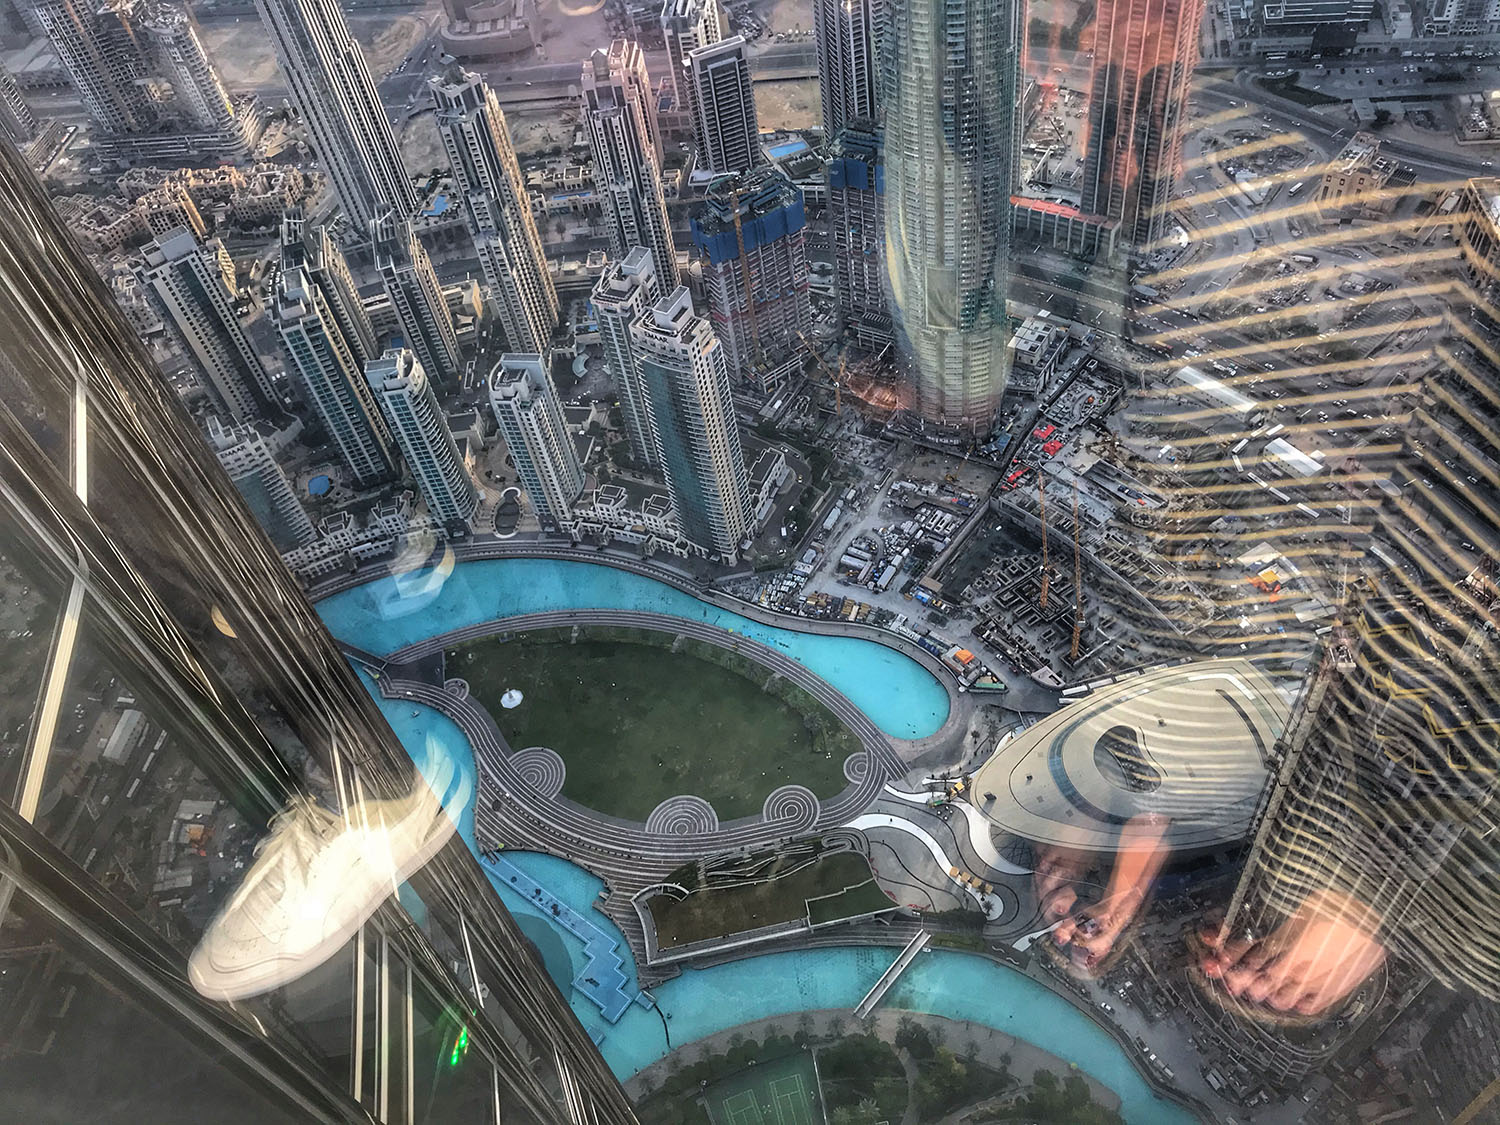 Looking from top of Burj Kahlifa at fountains